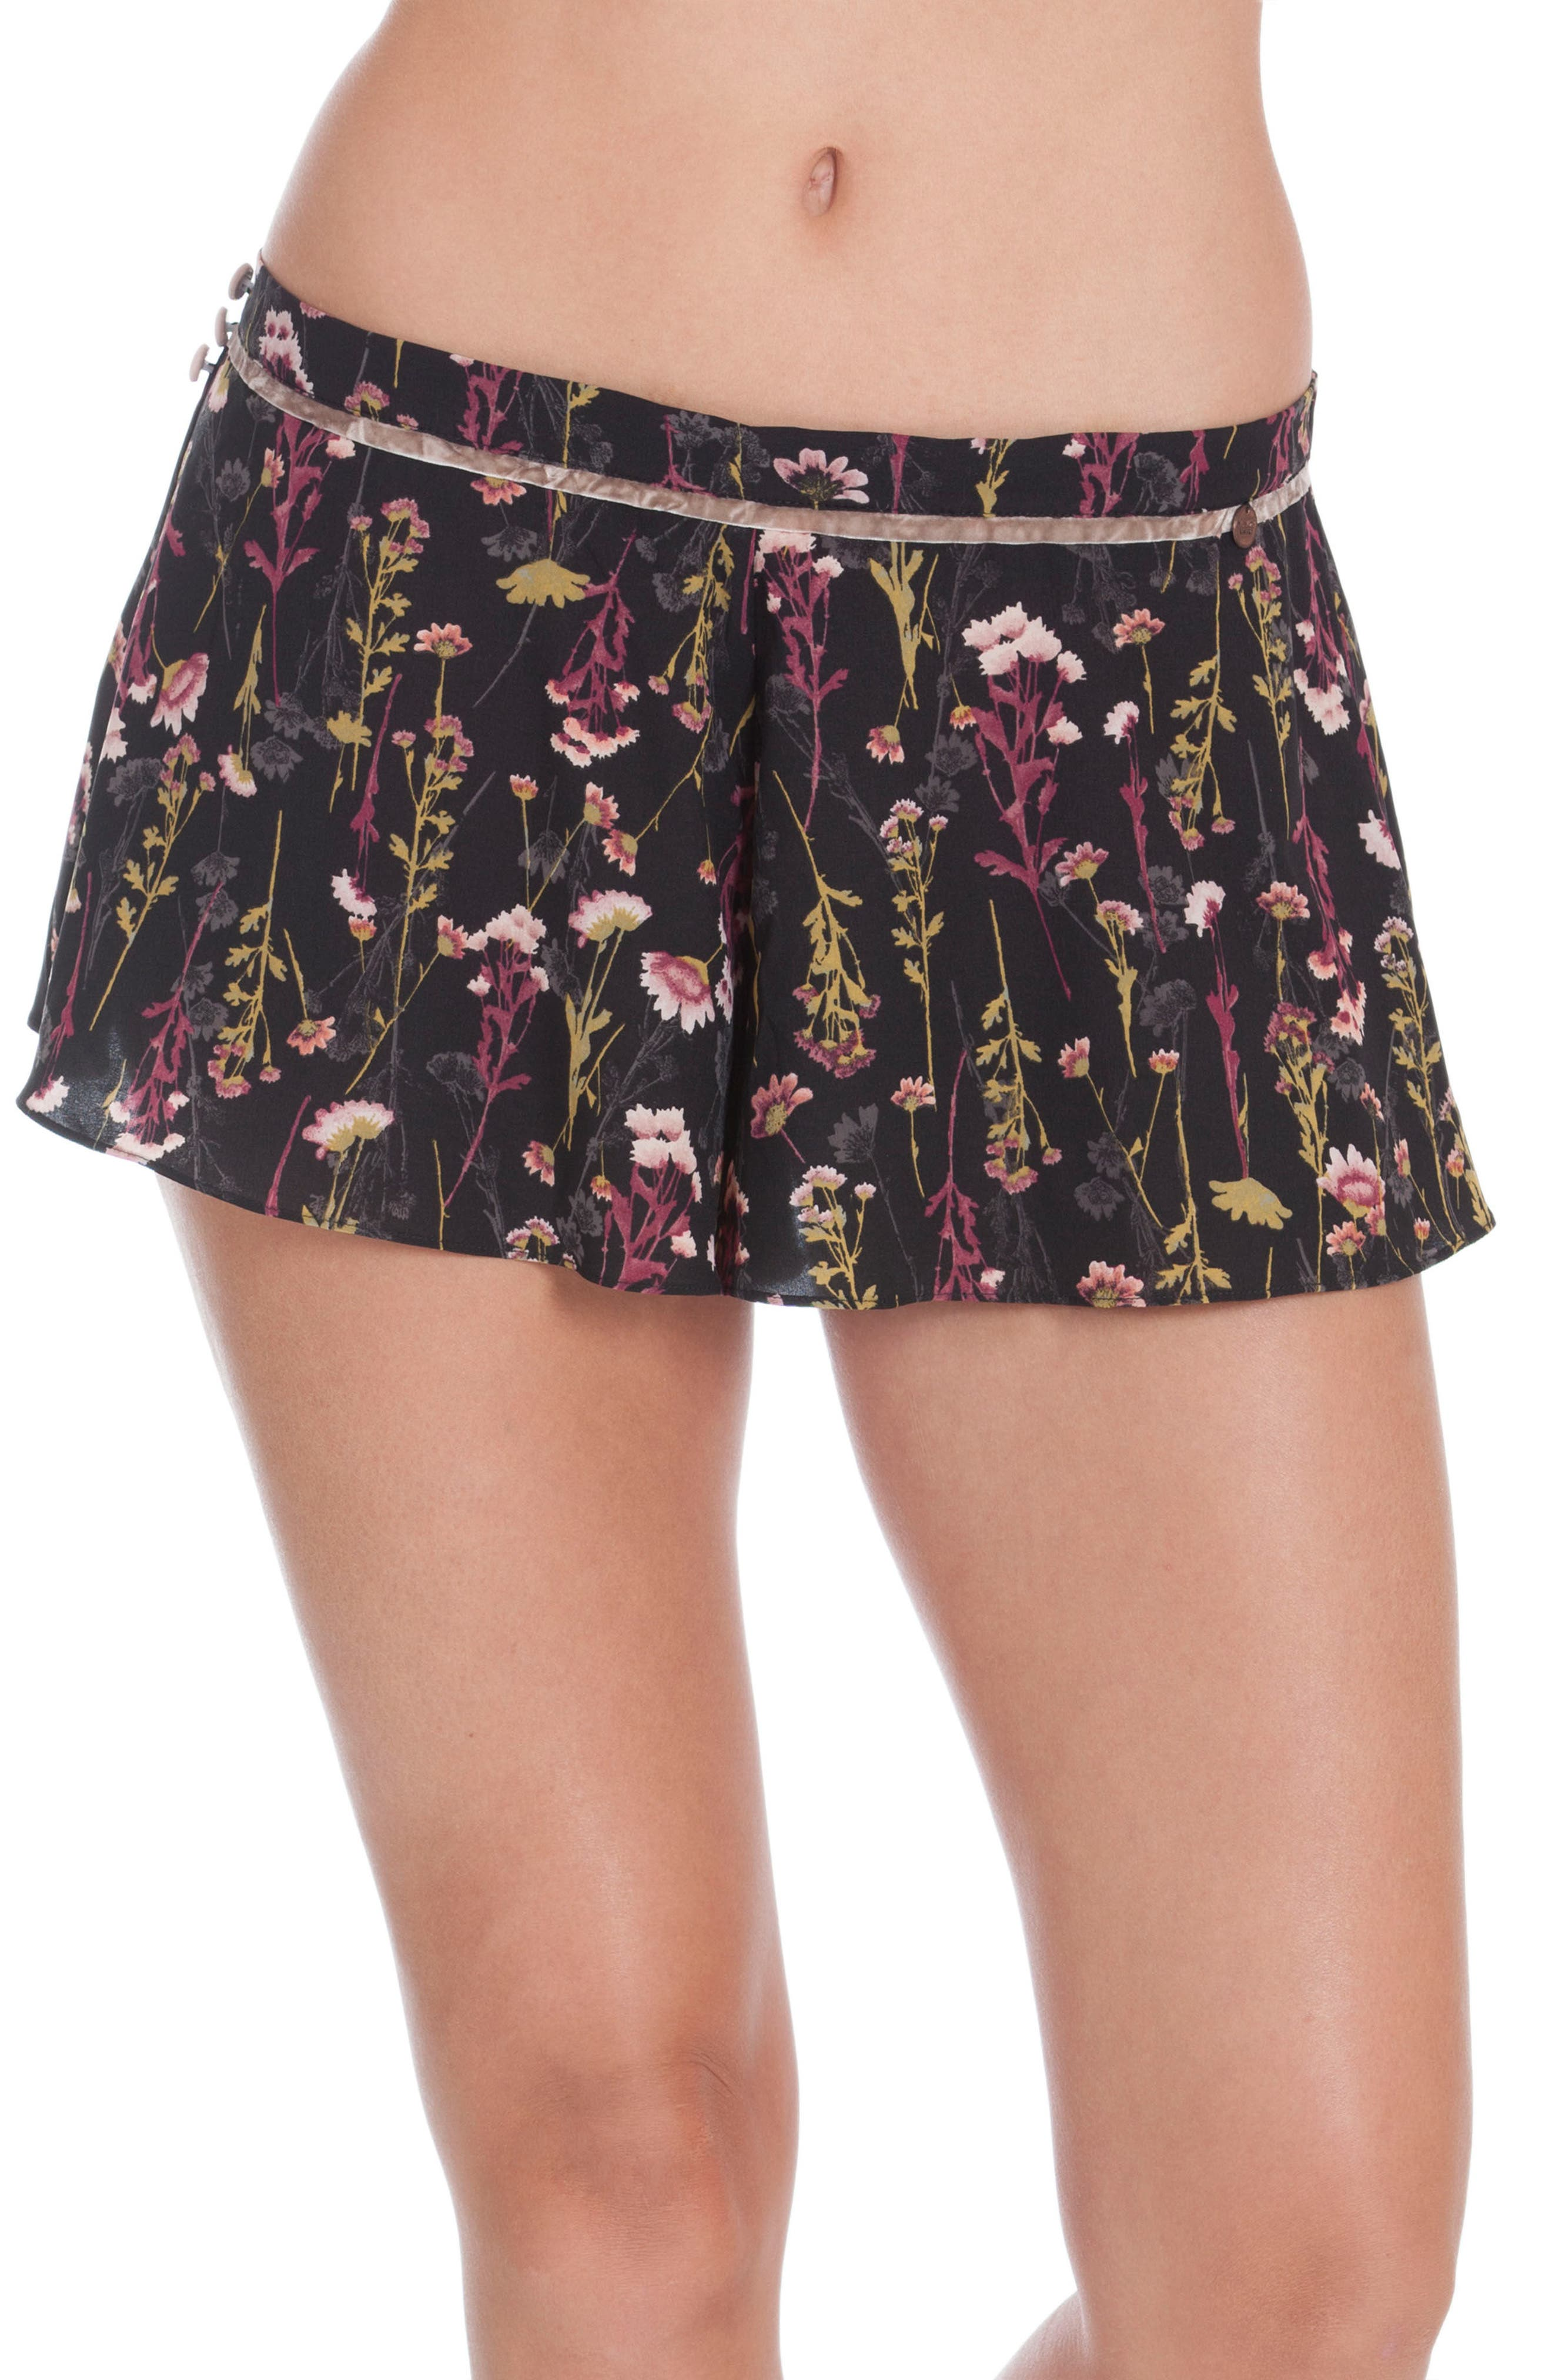 Floral Print Lounge Shorts,                             Main thumbnail 1, color,                             001